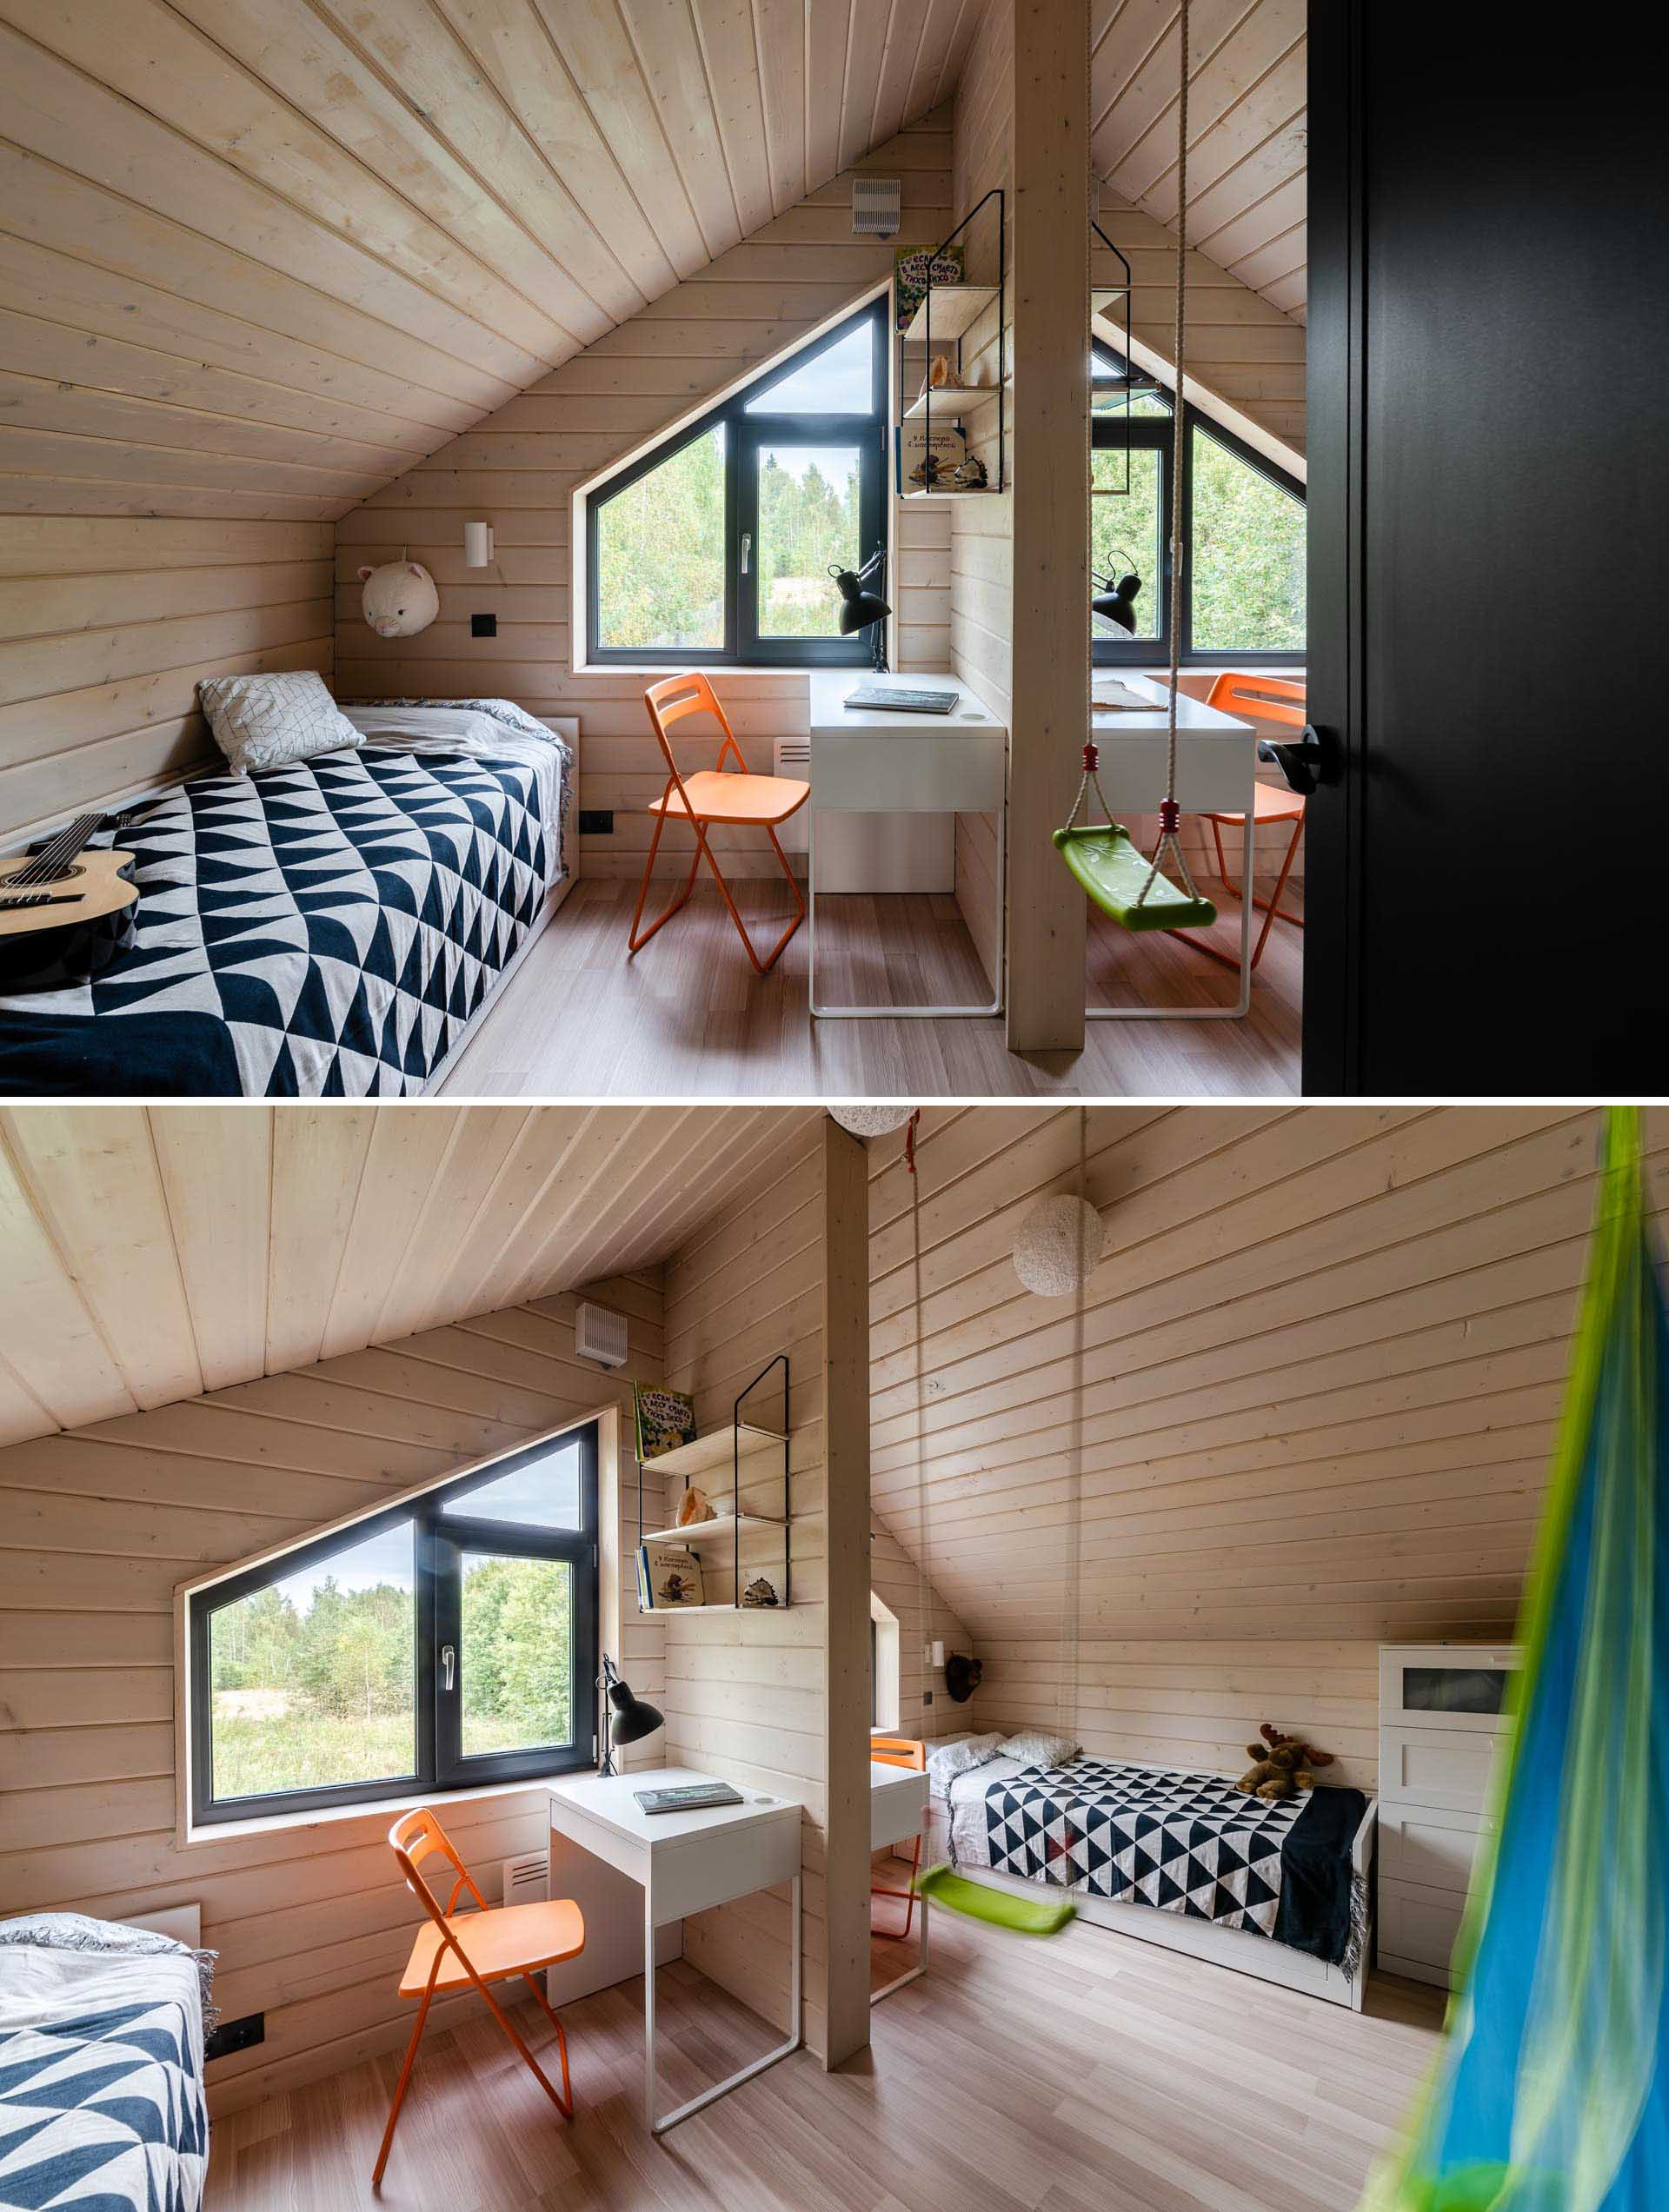 These kid's bedrooms are mirror images of each other, however the wall between the two rooms is only partial, allowing the children to play together, yet still have their own space.